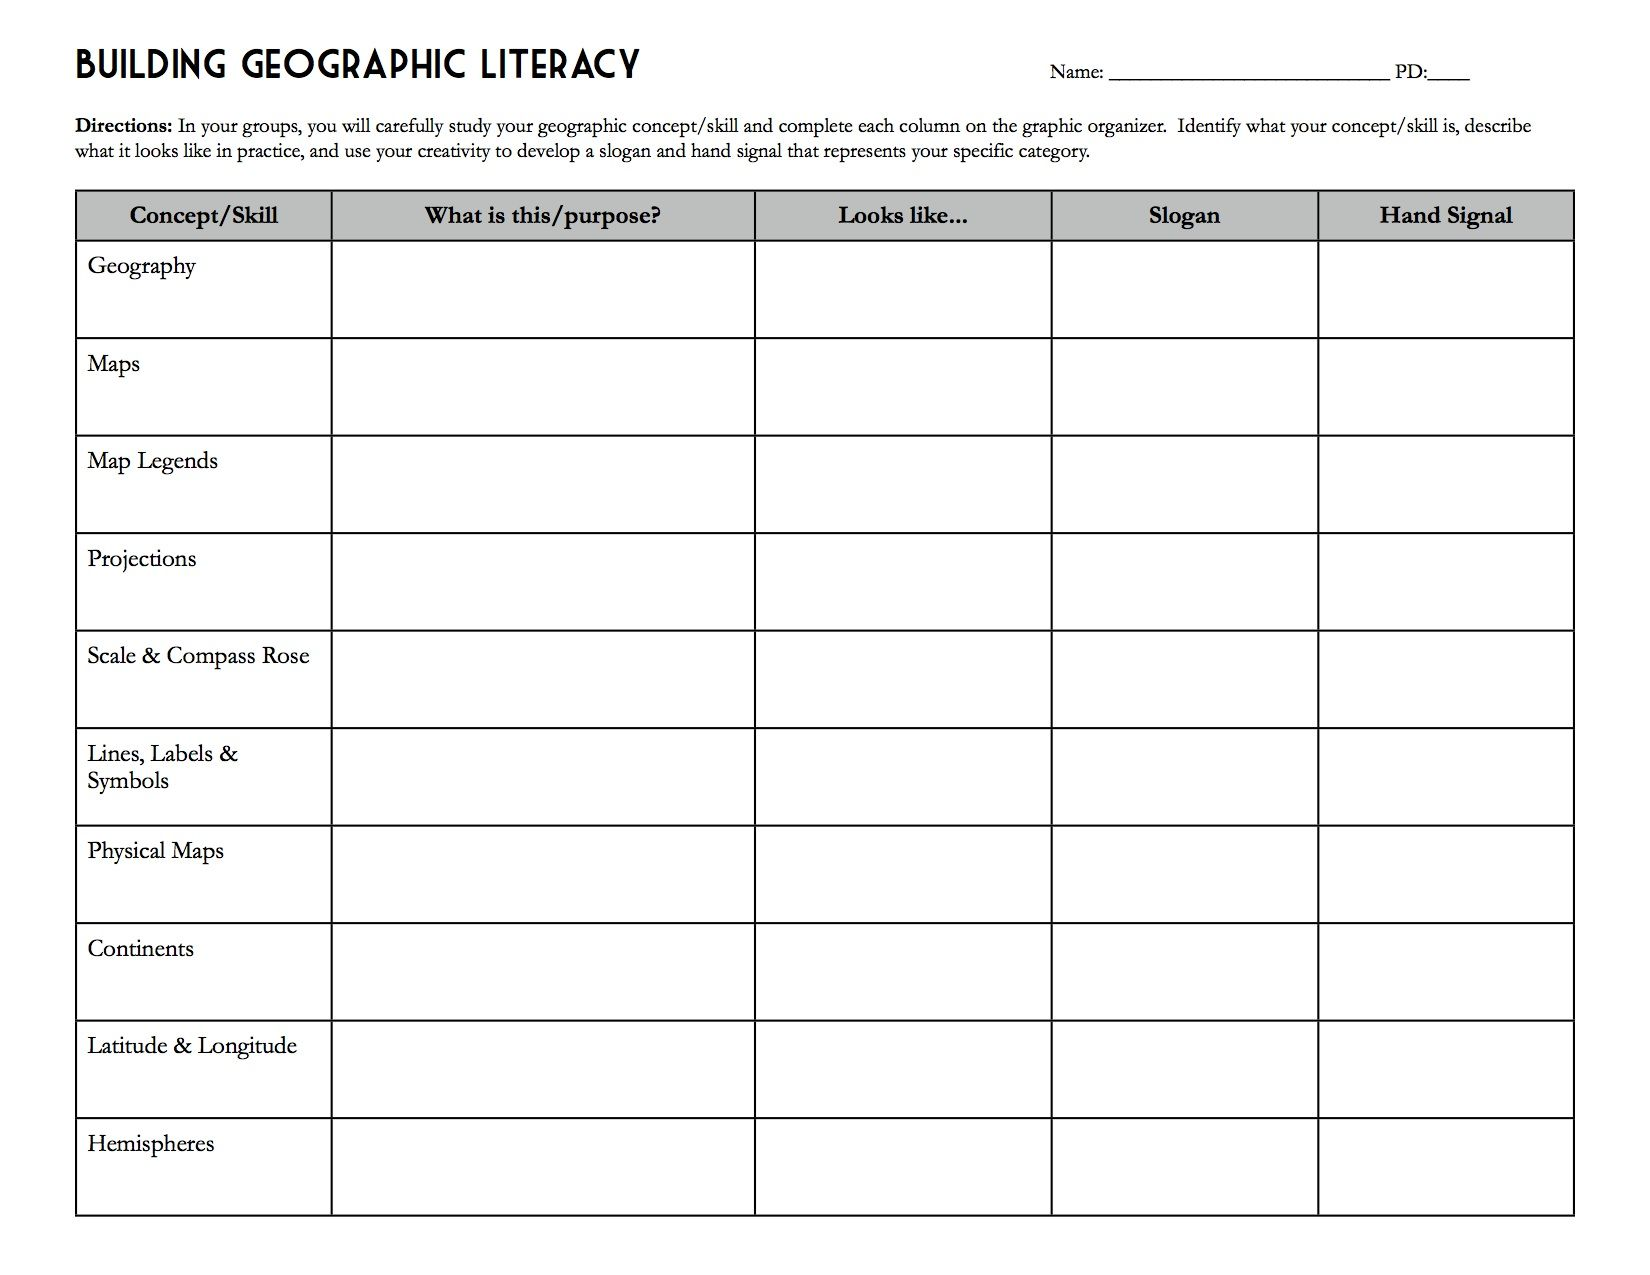 Building Geographic Literacy Worksheet | Martin's AP Human ...